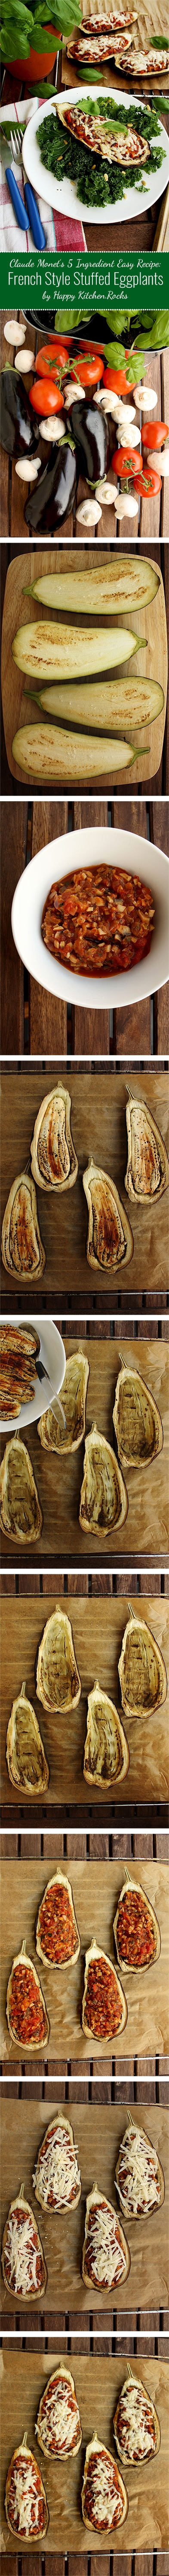 French Style Stuffed Eggplants: Claude Monet's 5 ingredient easy vegetarian recipe. Elegant and healthy gluten-free appetizer, perfect for lunch or dinner.